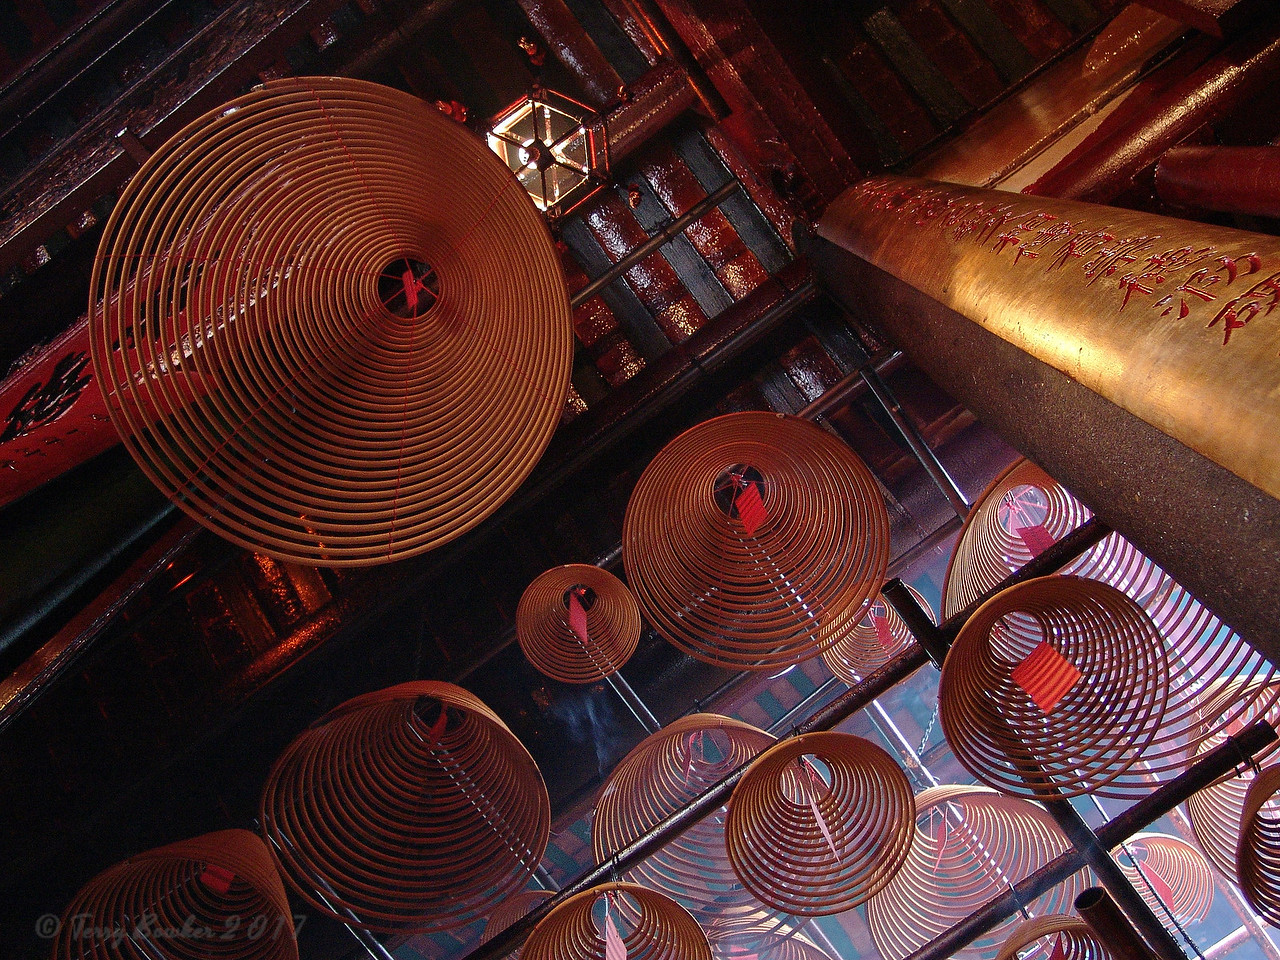 Incense Coils Hanging In Man Mo Temple, Hong Kong.  Hong Kong Island's oldest and most important temple (Taoist) was built in the 1840s as one of the new colony's first traditional-style temples. It's named after its two principal deities: Man, the god of literature, who is dressed in red and holds a calligraphy brush; and Mo, the god of war, wearing a green robe and holding a sword.